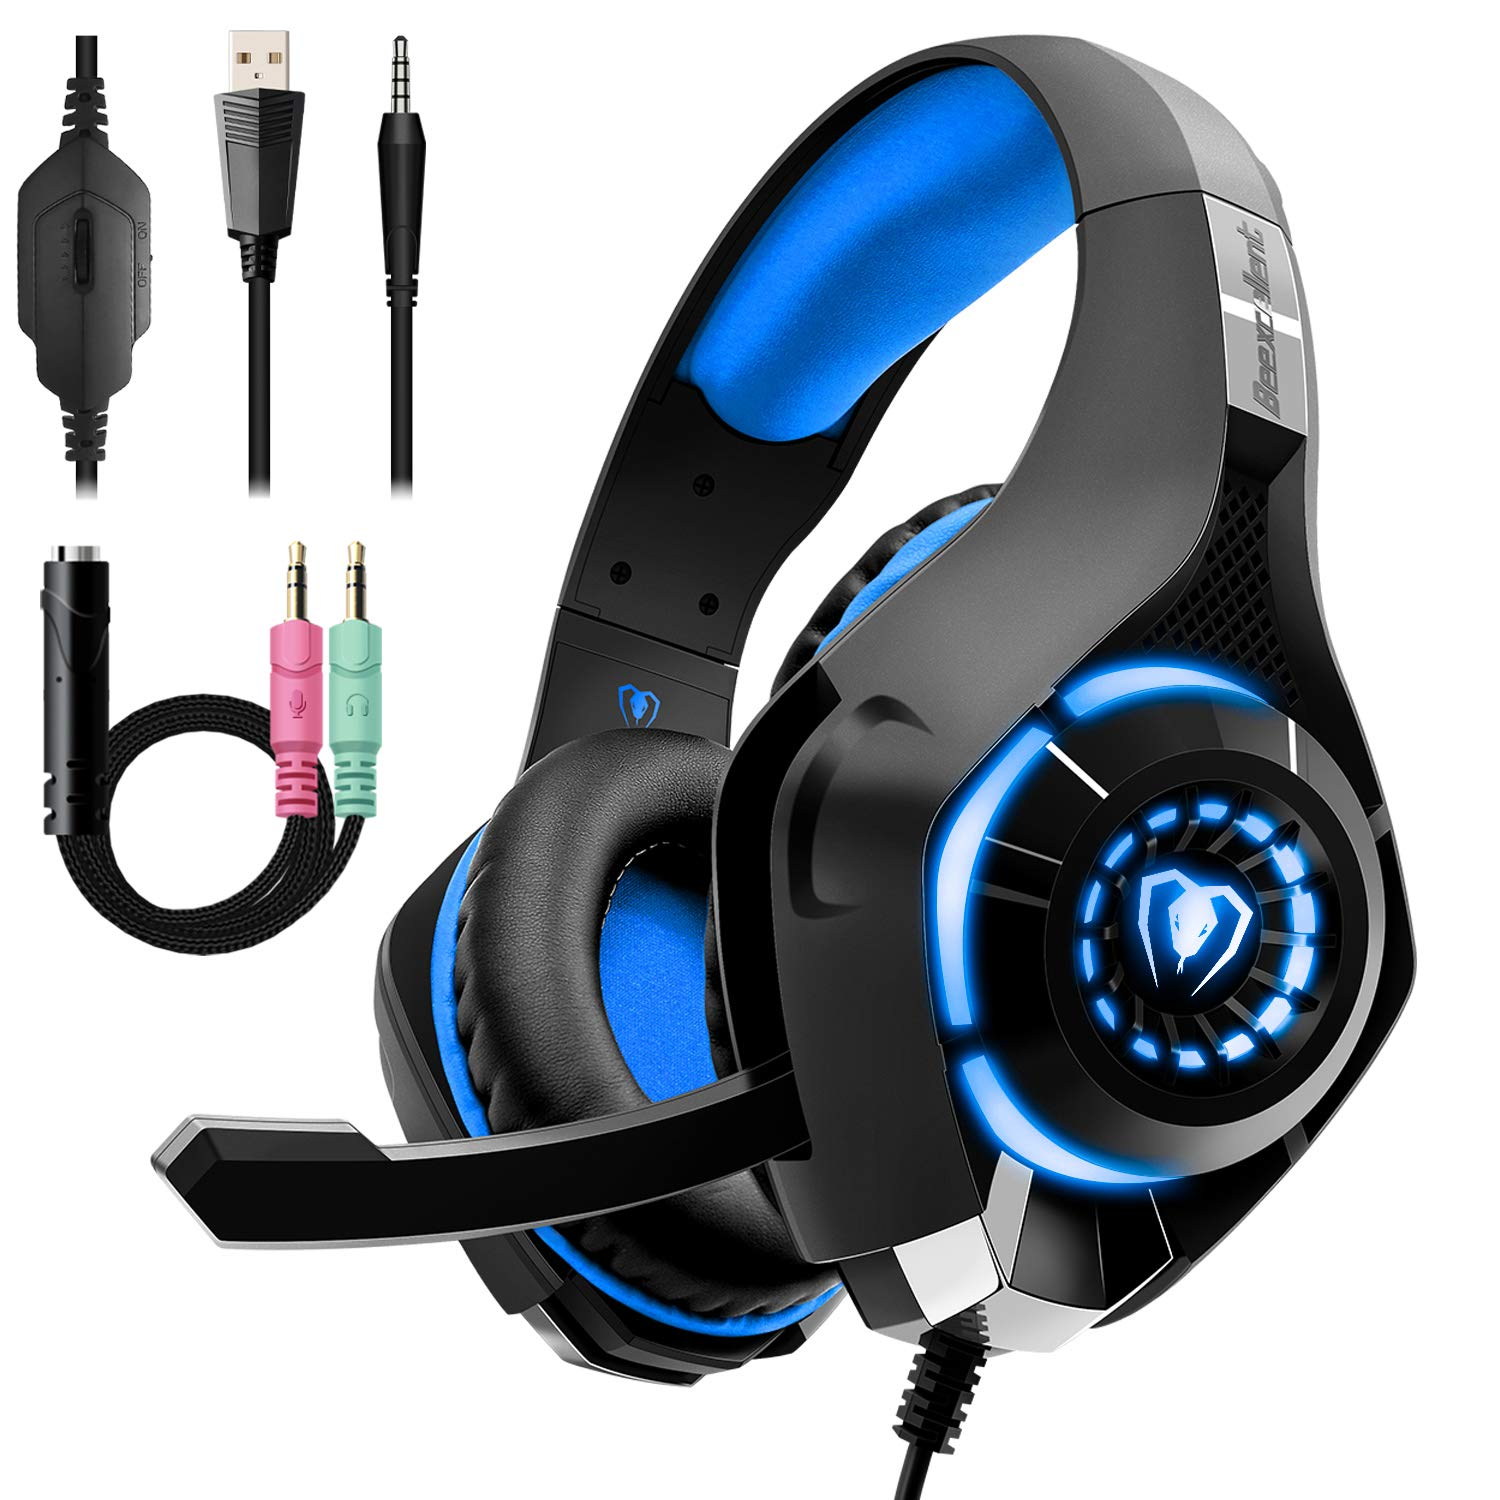 Gaming Headset for PC PS4 Beexcellent Stereo Surround Sound Gaming Headphones with Noise Cancelling Microphone Volume Control LED Lights for Xbox One Laptops Mac Smartphone RED